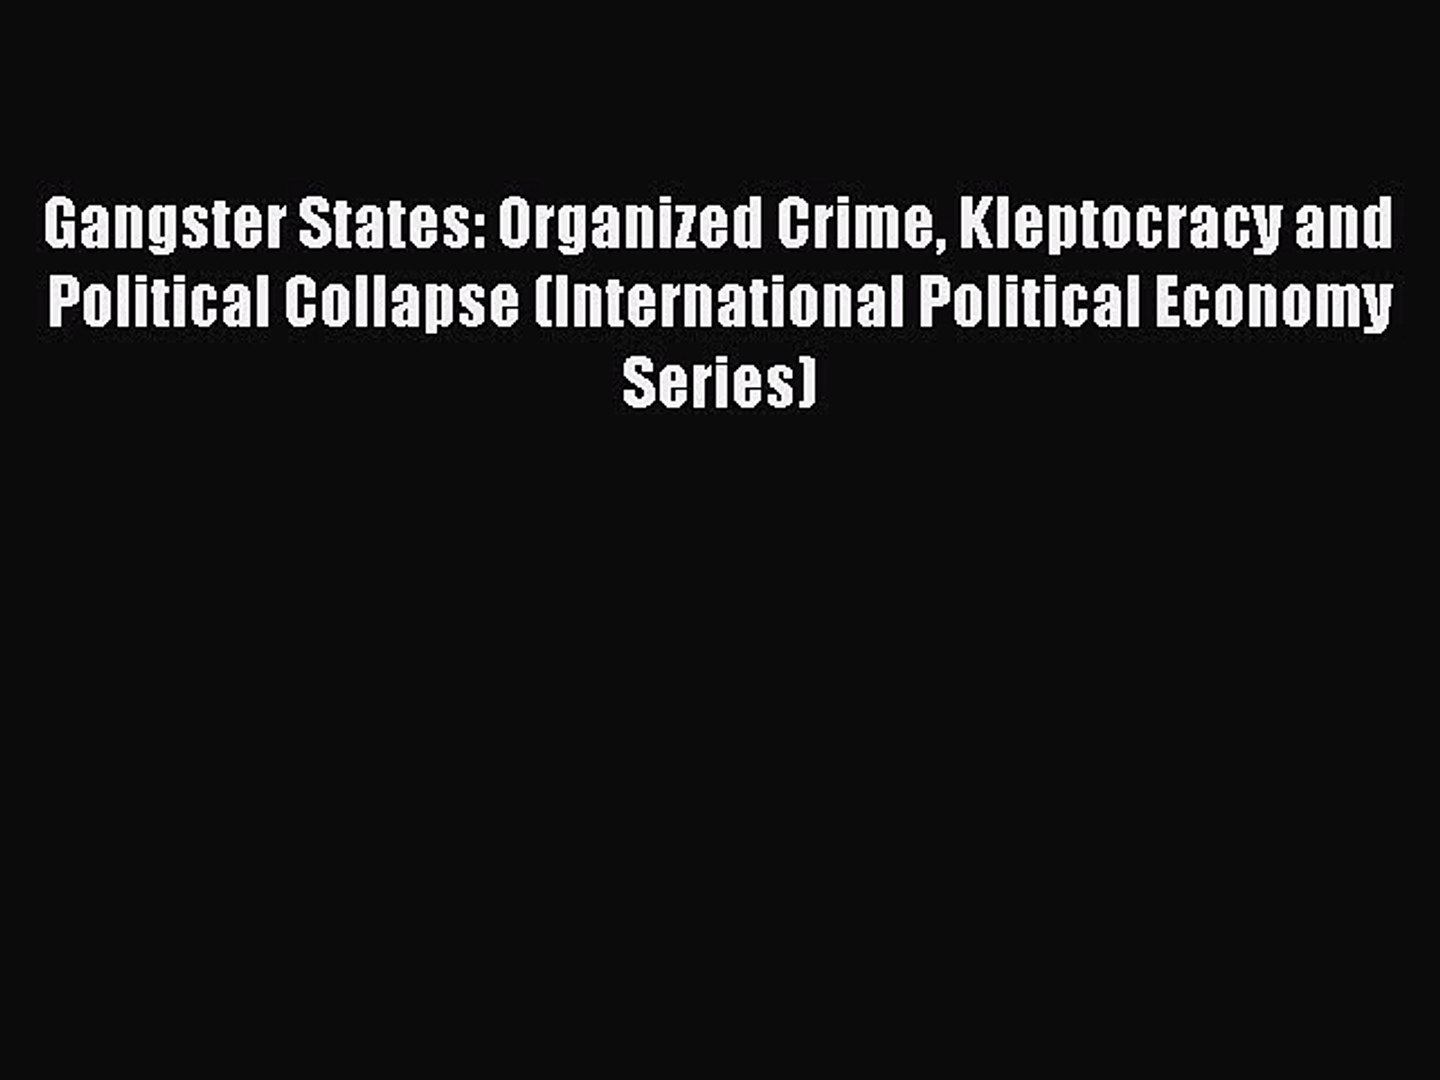 Gangster States: Organized Crime Kleptocracy and Political Collapse (International Political